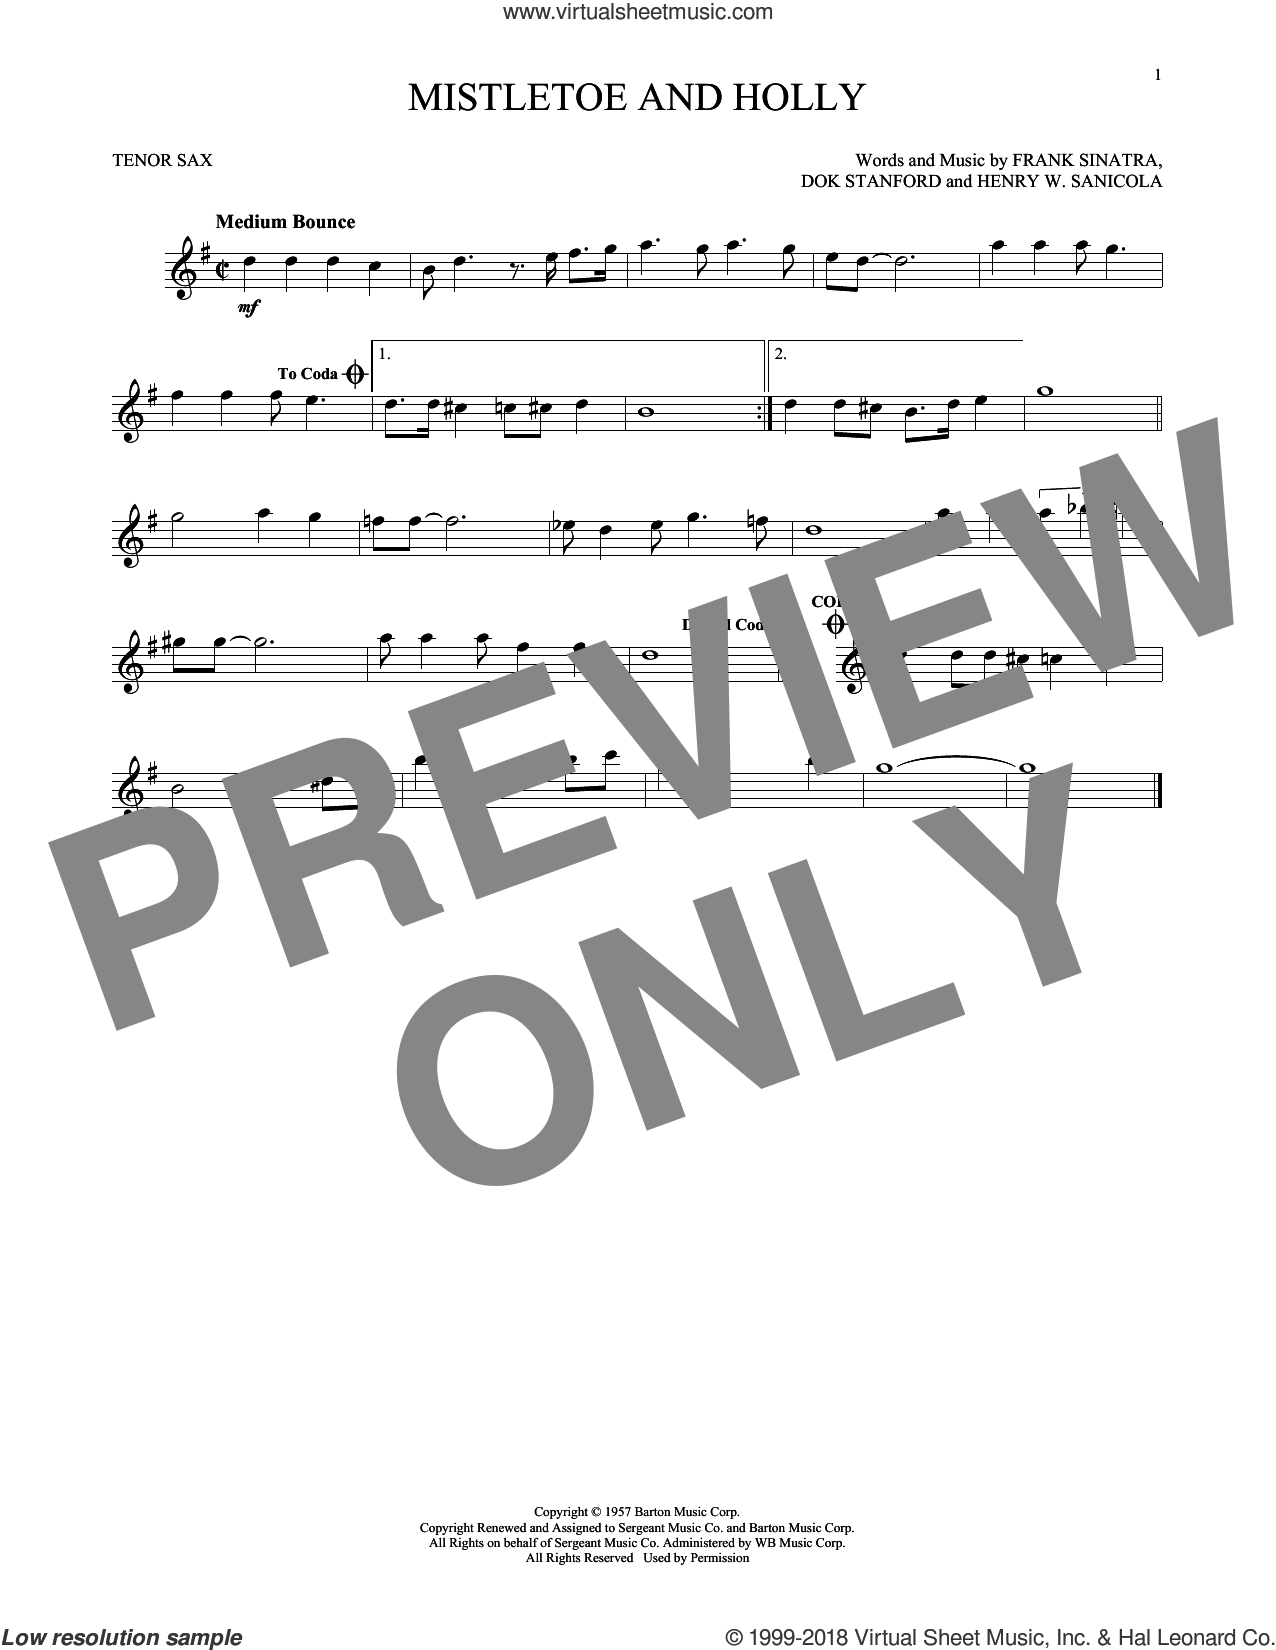 Mistletoe And Holly sheet music for tenor saxophone solo by Frank Sinatra, Dok Stanford and Henry W. Sanicola, intermediate skill level